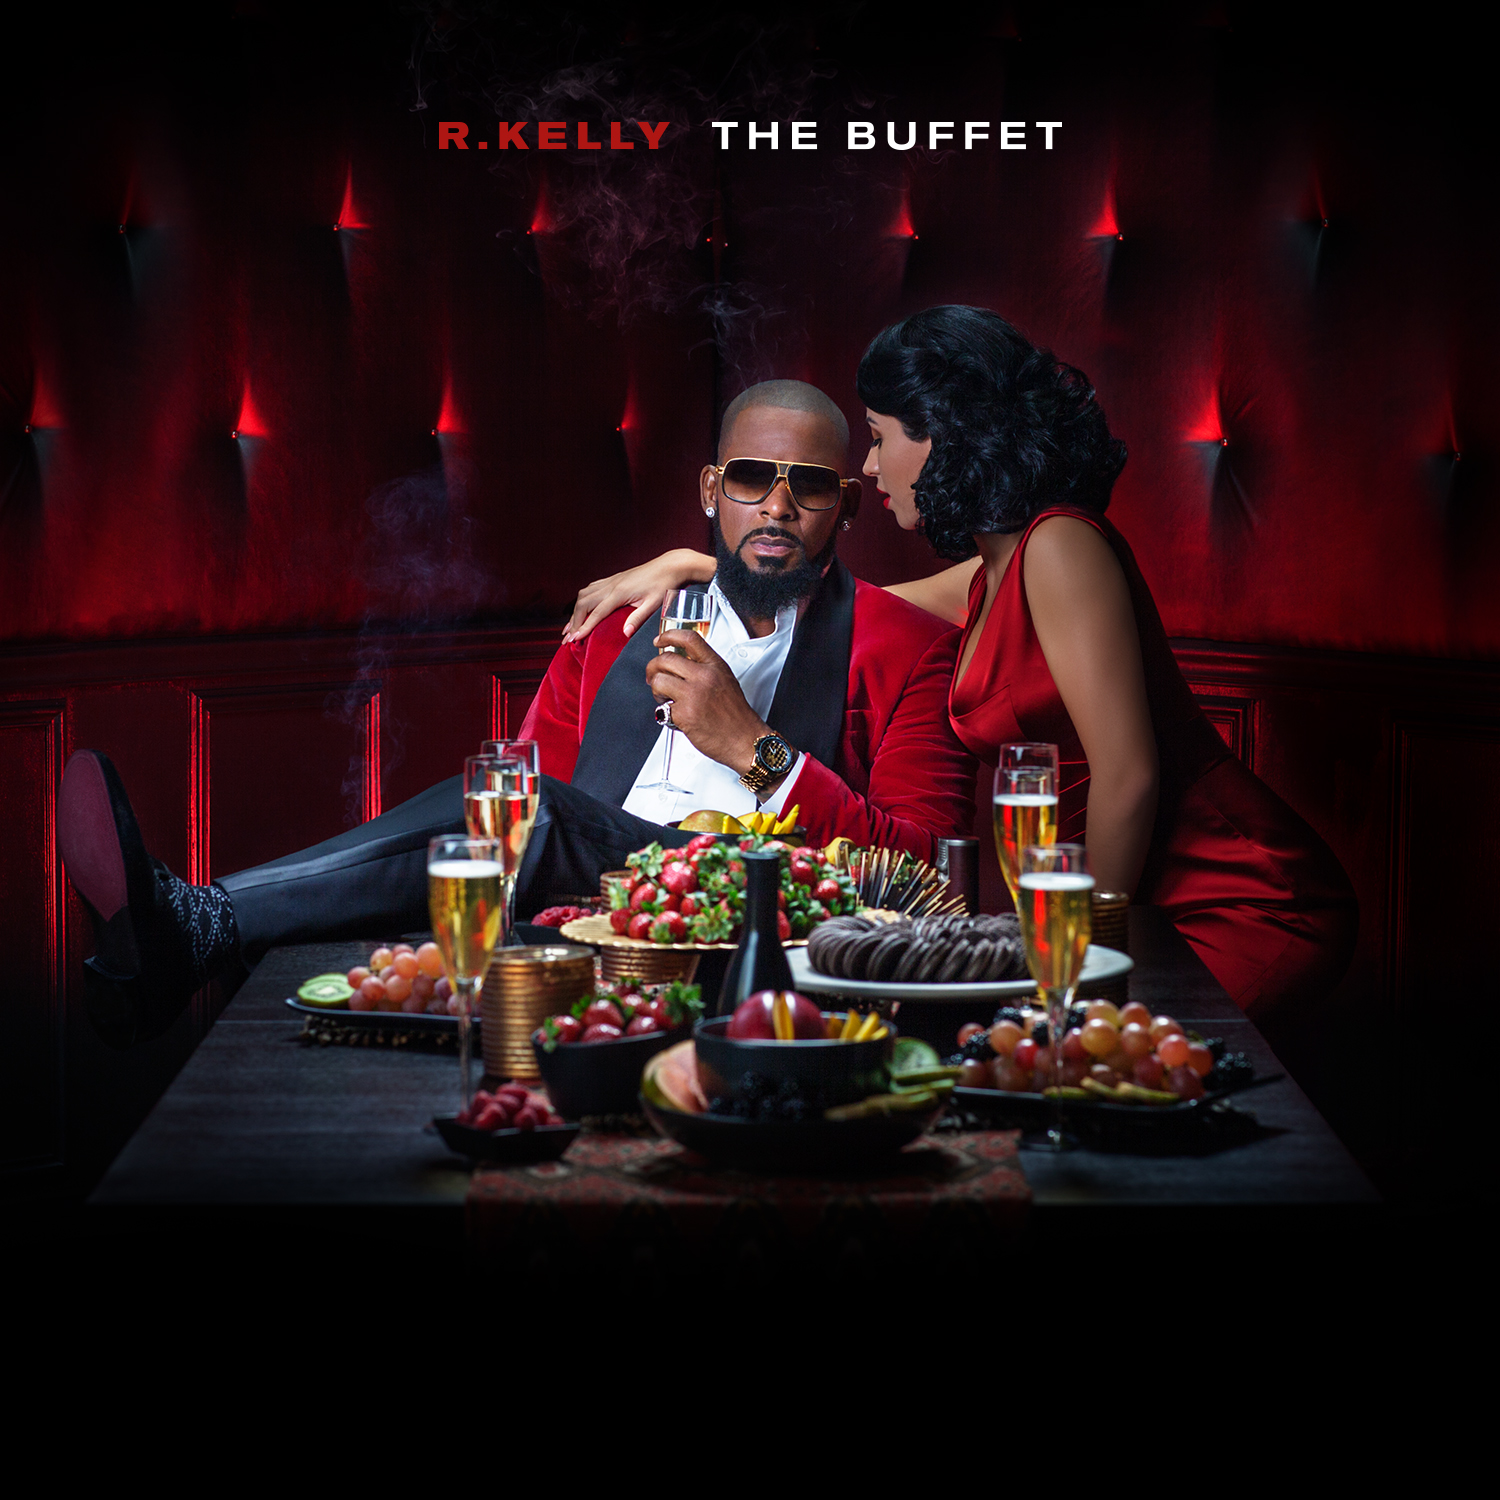 R_Kelly_The_Buffet_album